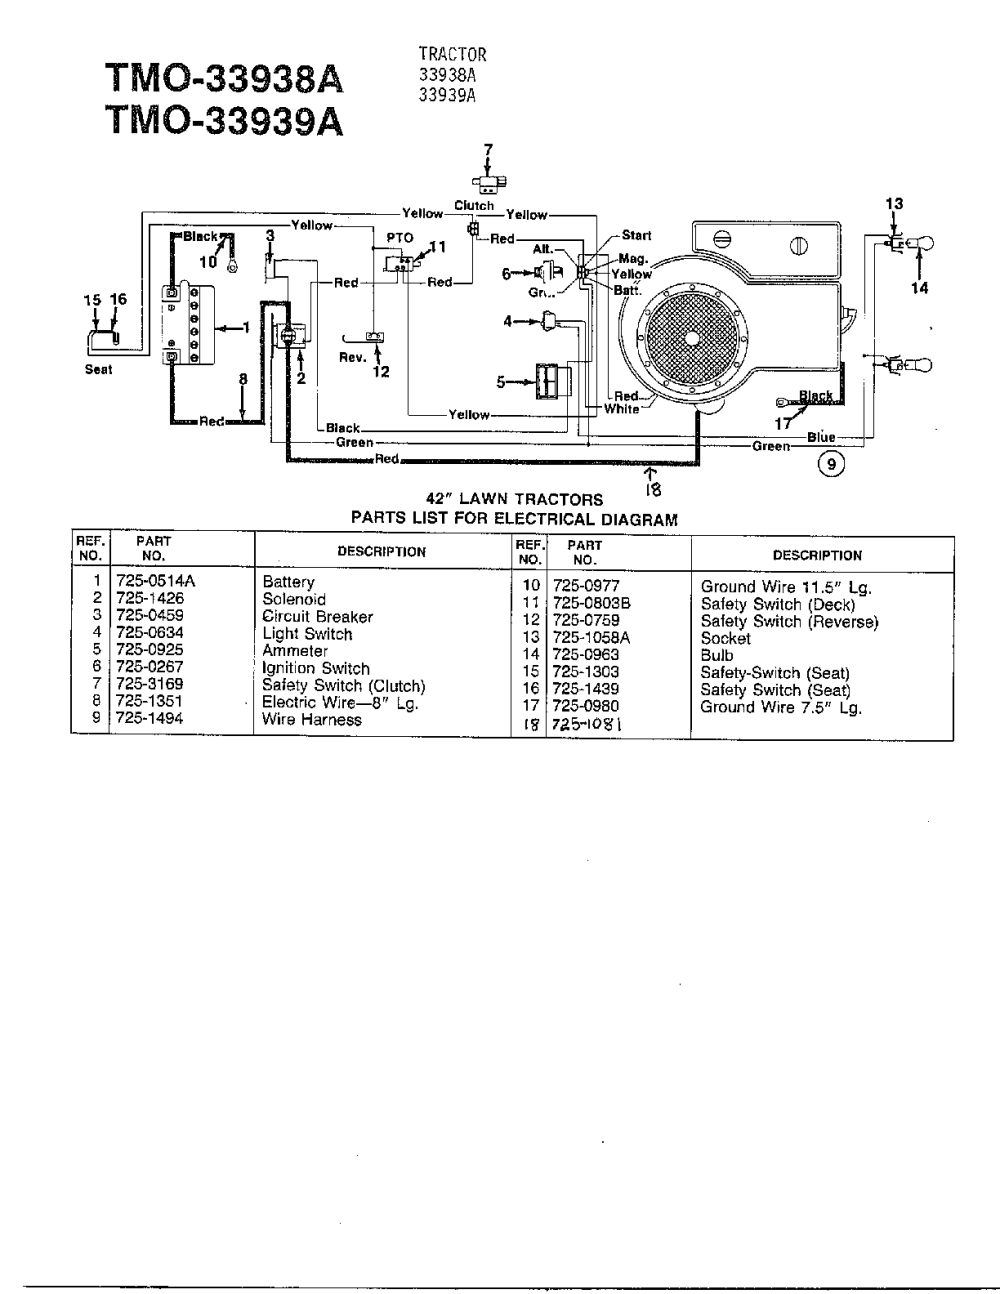 medium resolution of mtd wiring schematic wiring diagrams monmtd wiring diagram wiring diagram mtd model 33938a lawn tractor